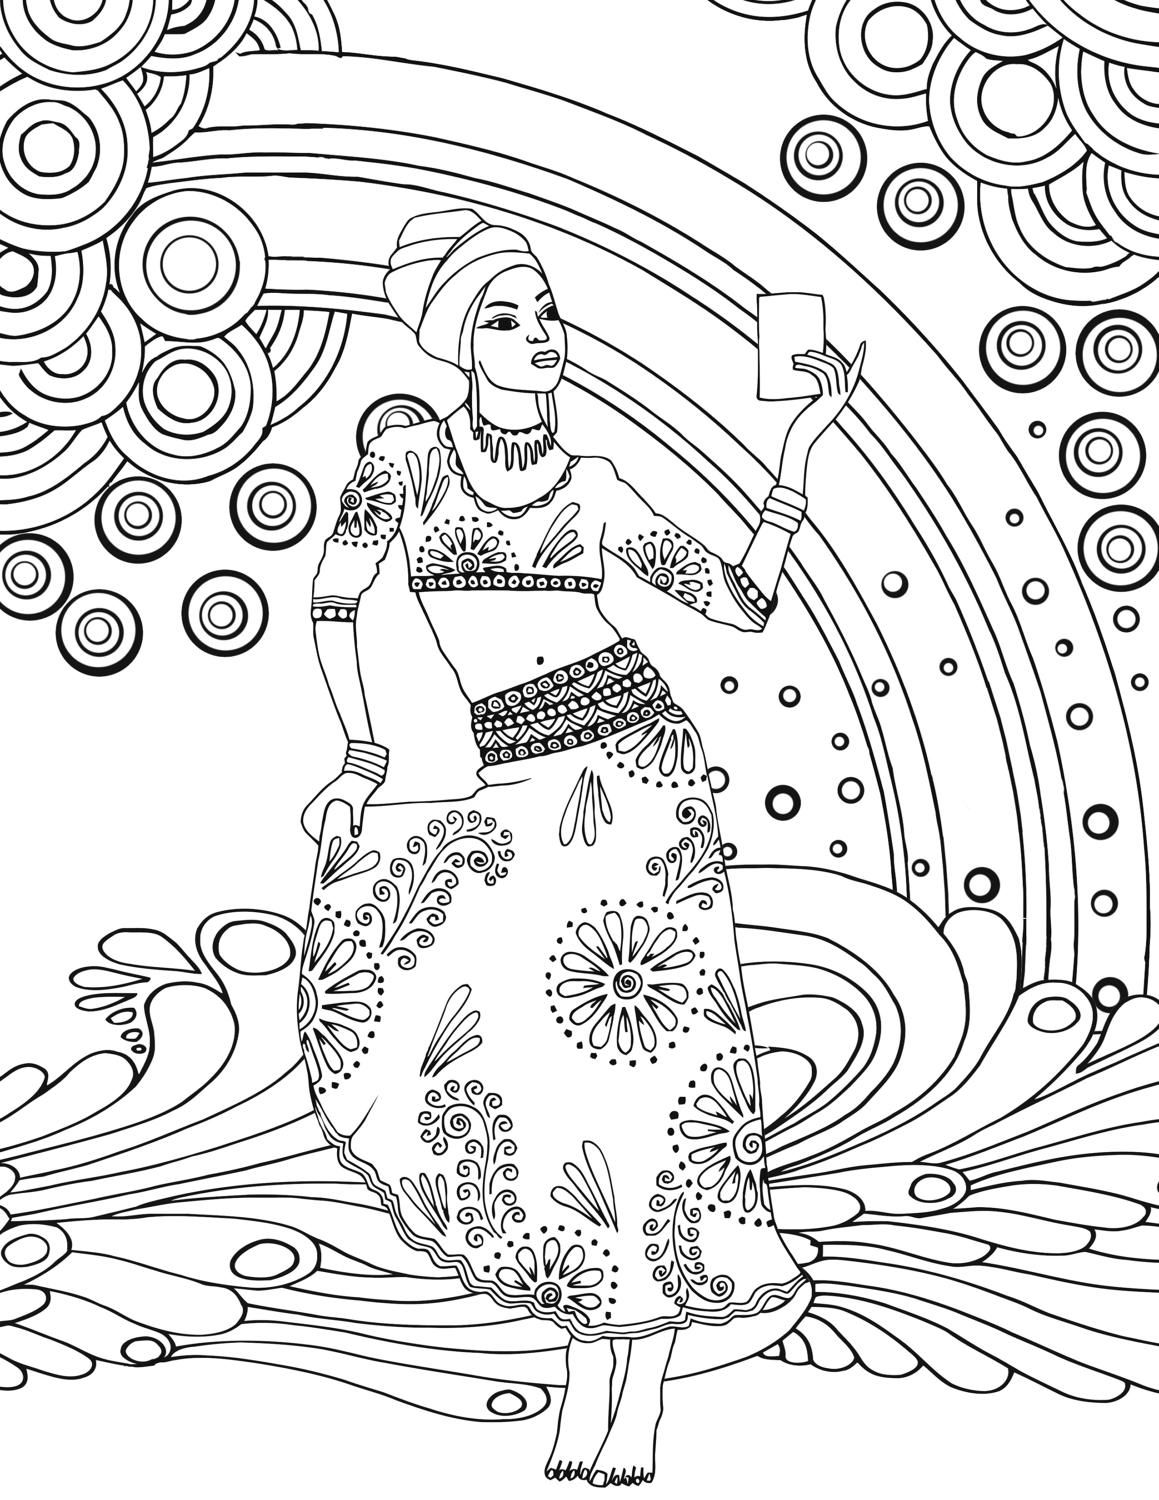 Gemstone Coloring Pages At Getcolorings